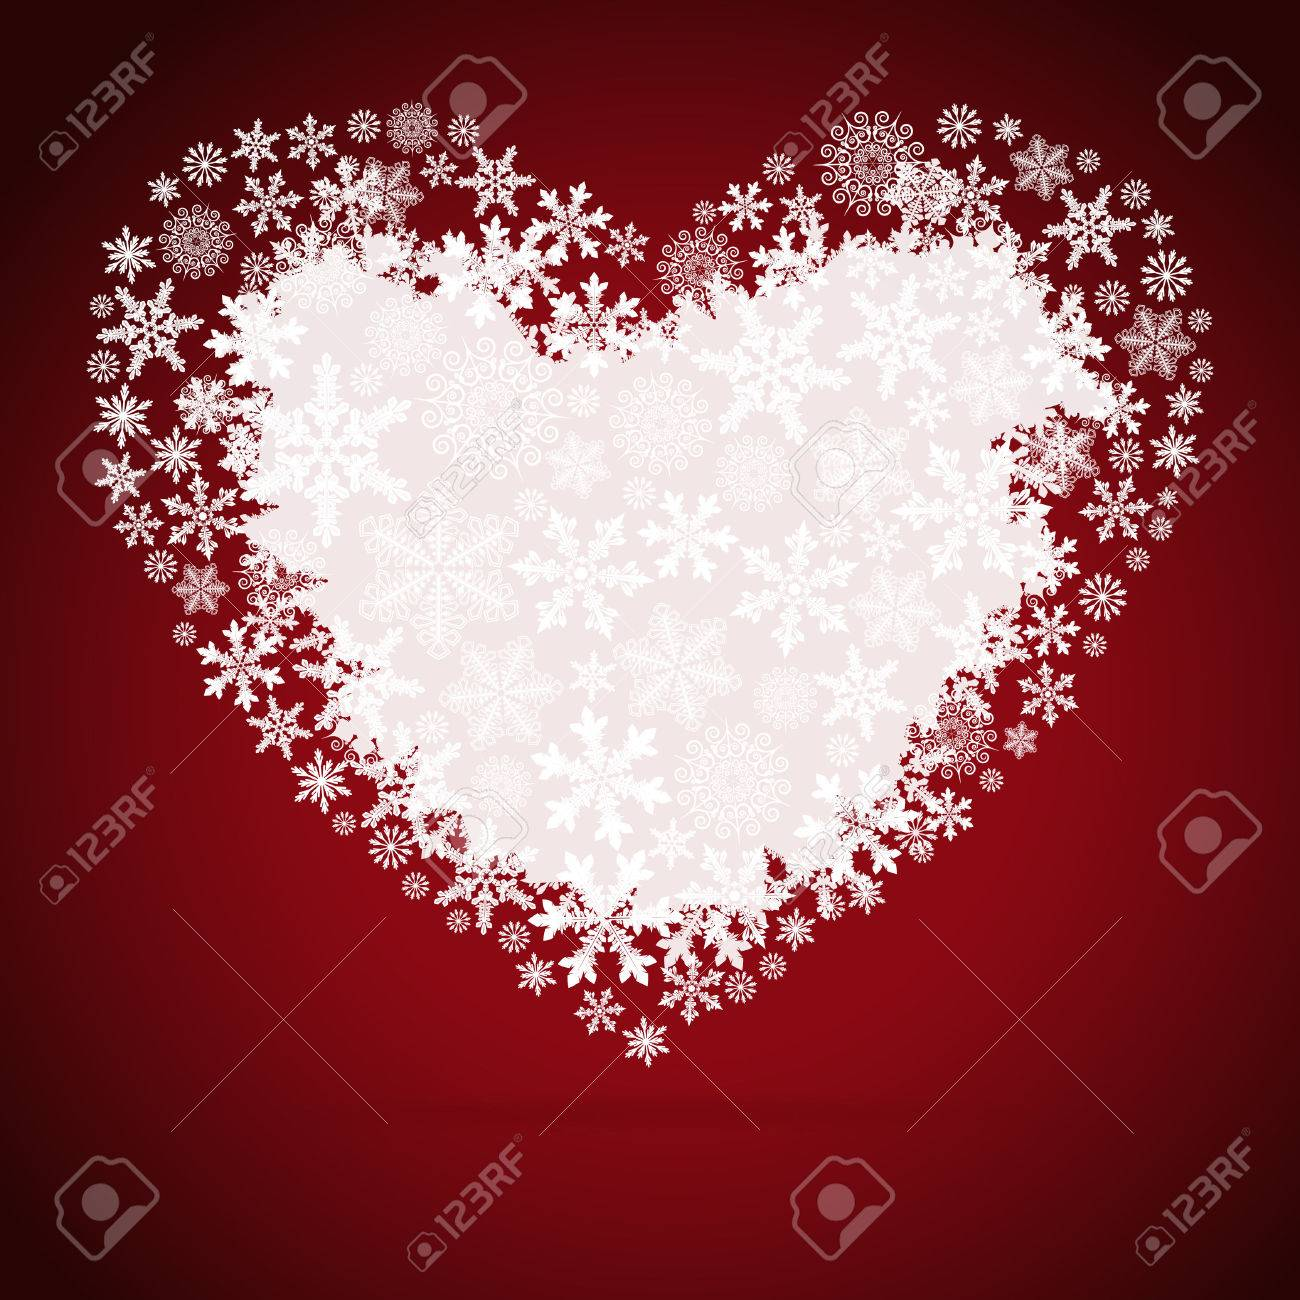 Christmas Heart.Christmas Heart Snowflake Design Background